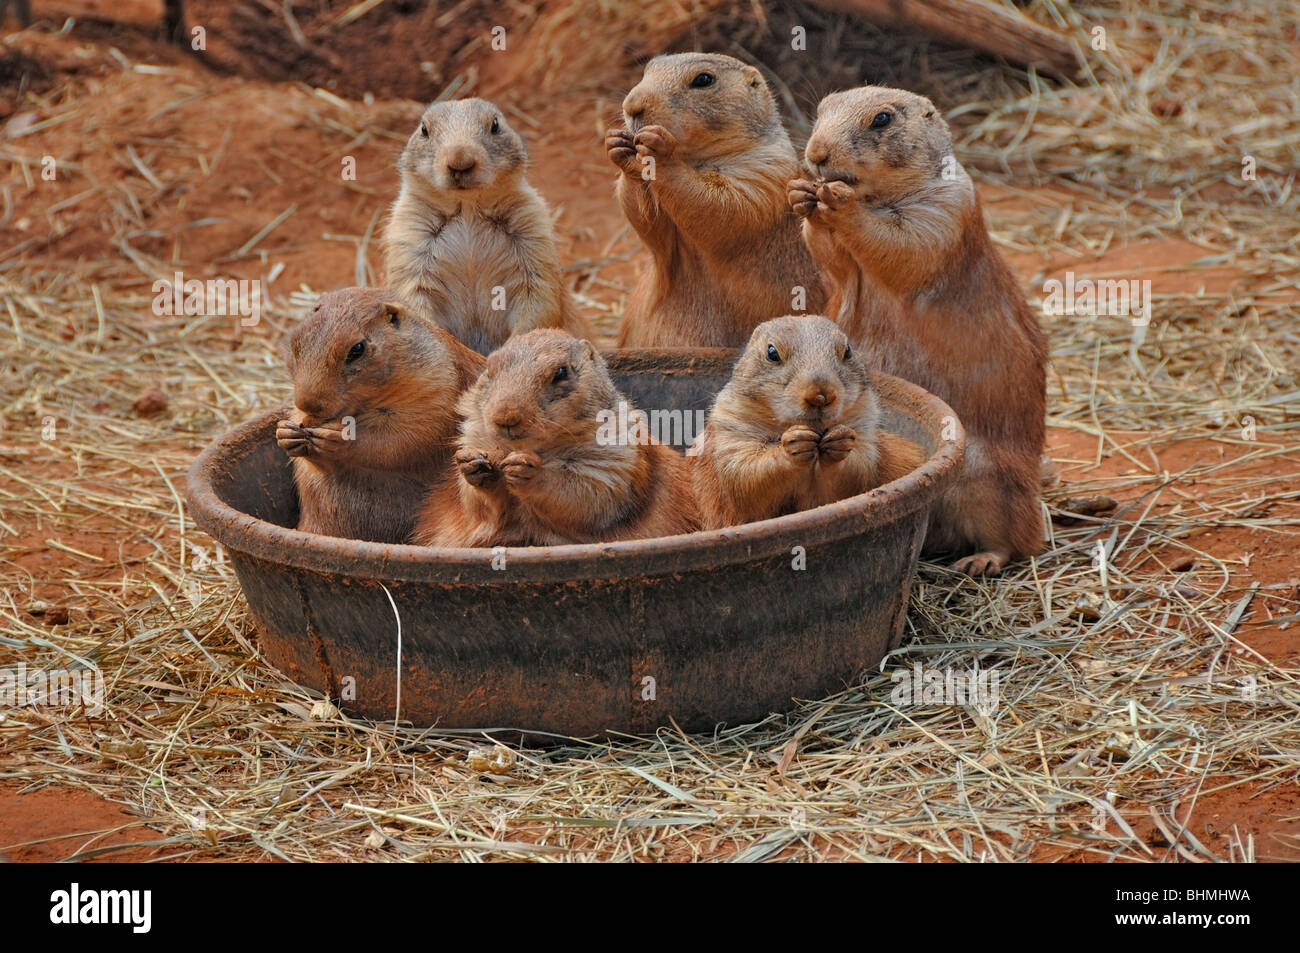 Feeding Prairie Dogs seen near Rapid CIty, South Dakota, USA - Stock Image